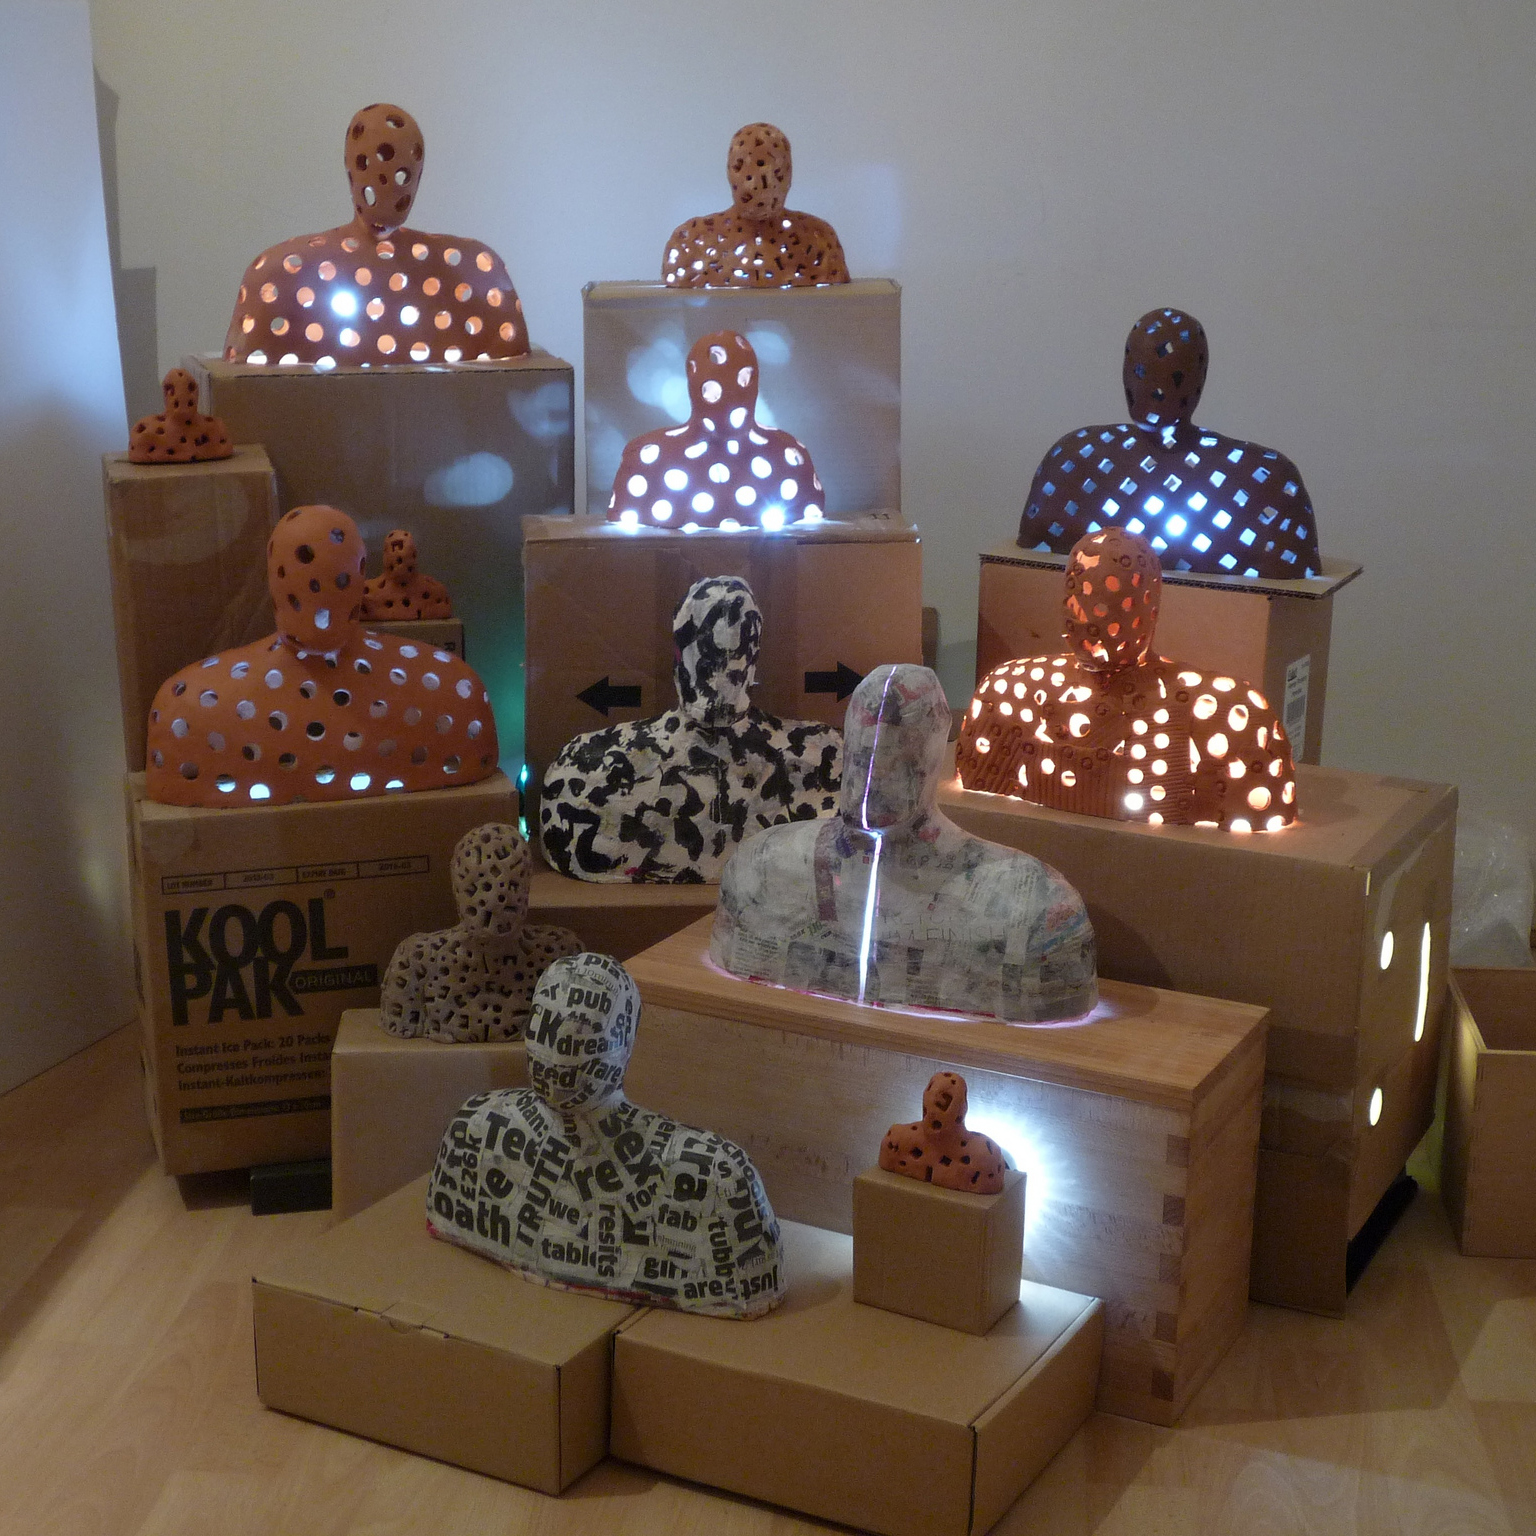 A tableau of 13 or more figures in terra-cotta, plaster and papier mache on stands illuminated by LED lights